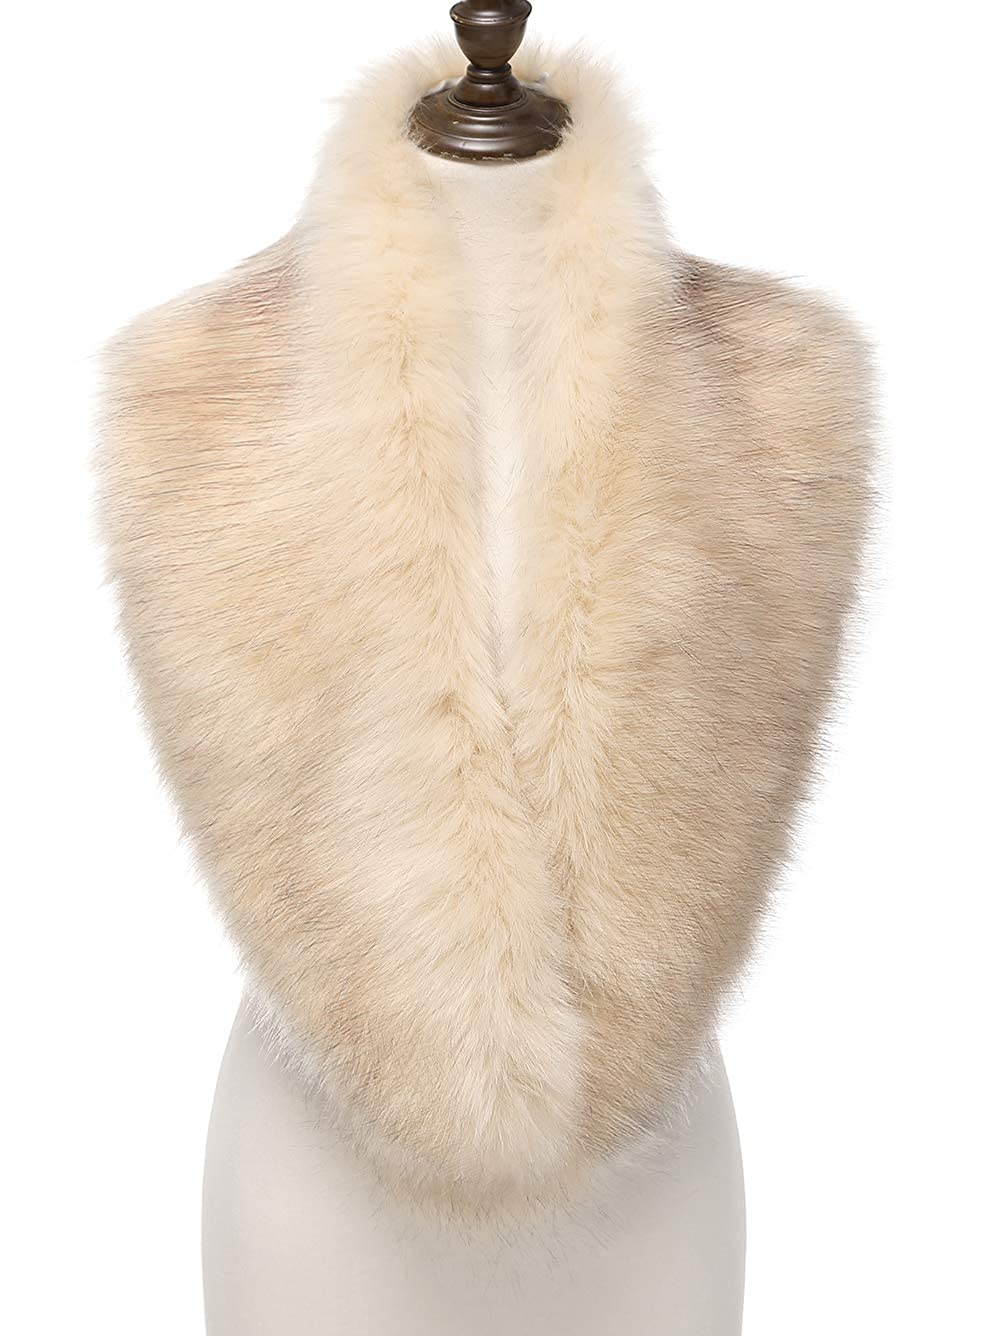 1920s Shawls, Scarves and Evening Jacket Tips Changuan Extra Large Womens Faux Fur Collar Shawl Scarf Wrap Evening Wedding Cape for Winter Coat  AT vintagedancer.com